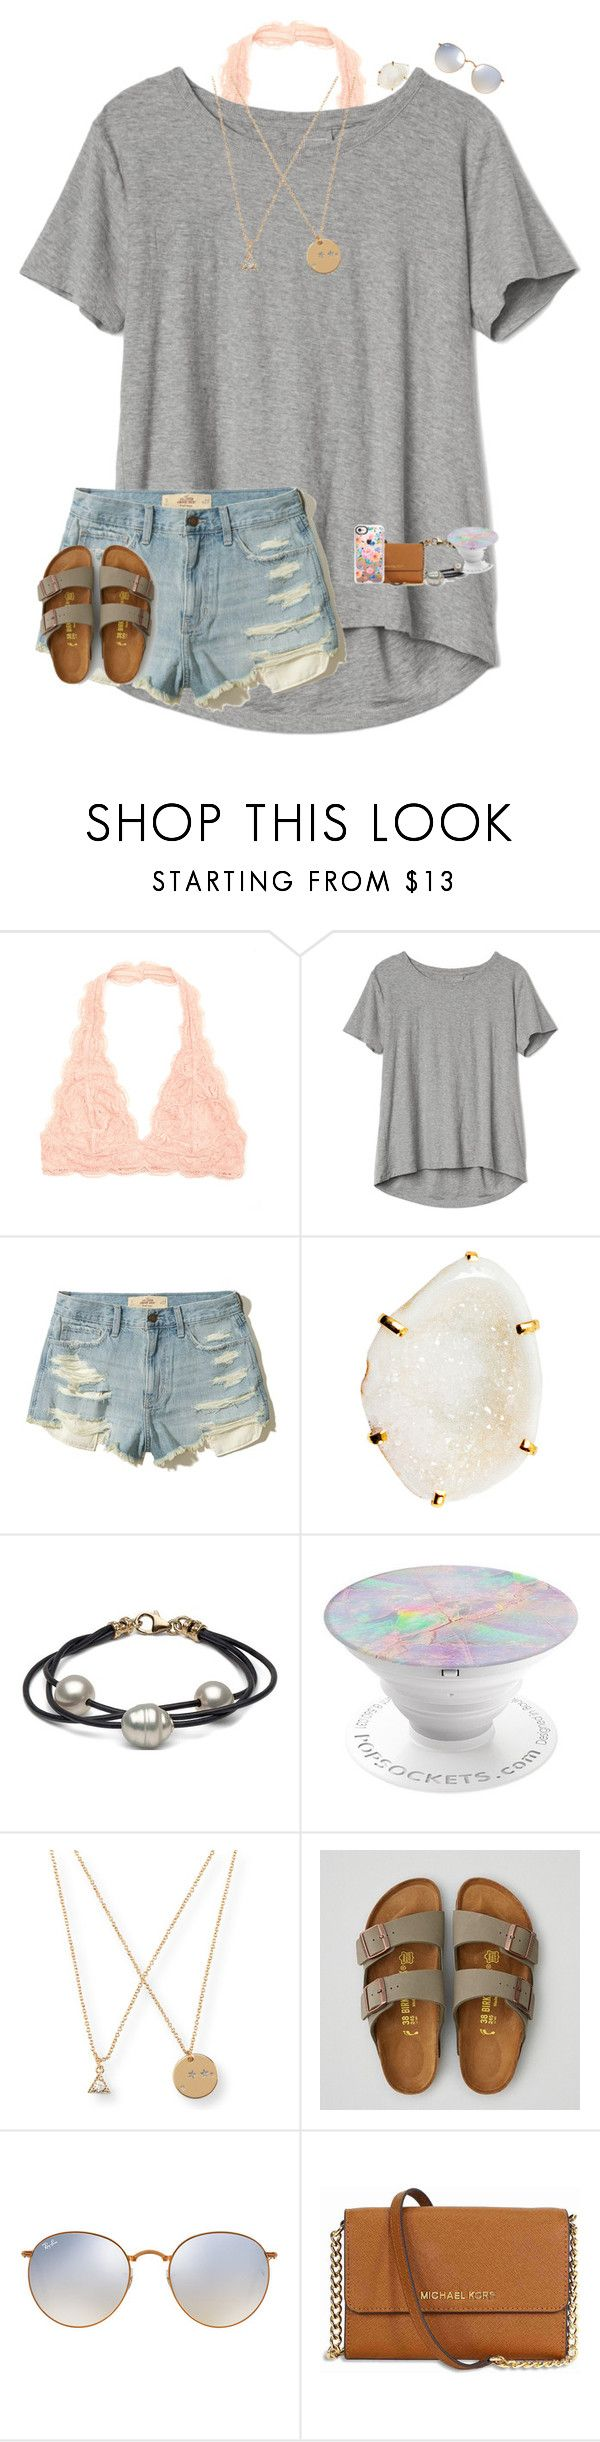 """•orientation tonight•"" by mackenzielacy814 on Polyvore featuring Gap, Hollister Co., Zara Taylor, Aéropostale, American Eagle Outfitters, Ray-Ban, Michael Kors and Casetify"